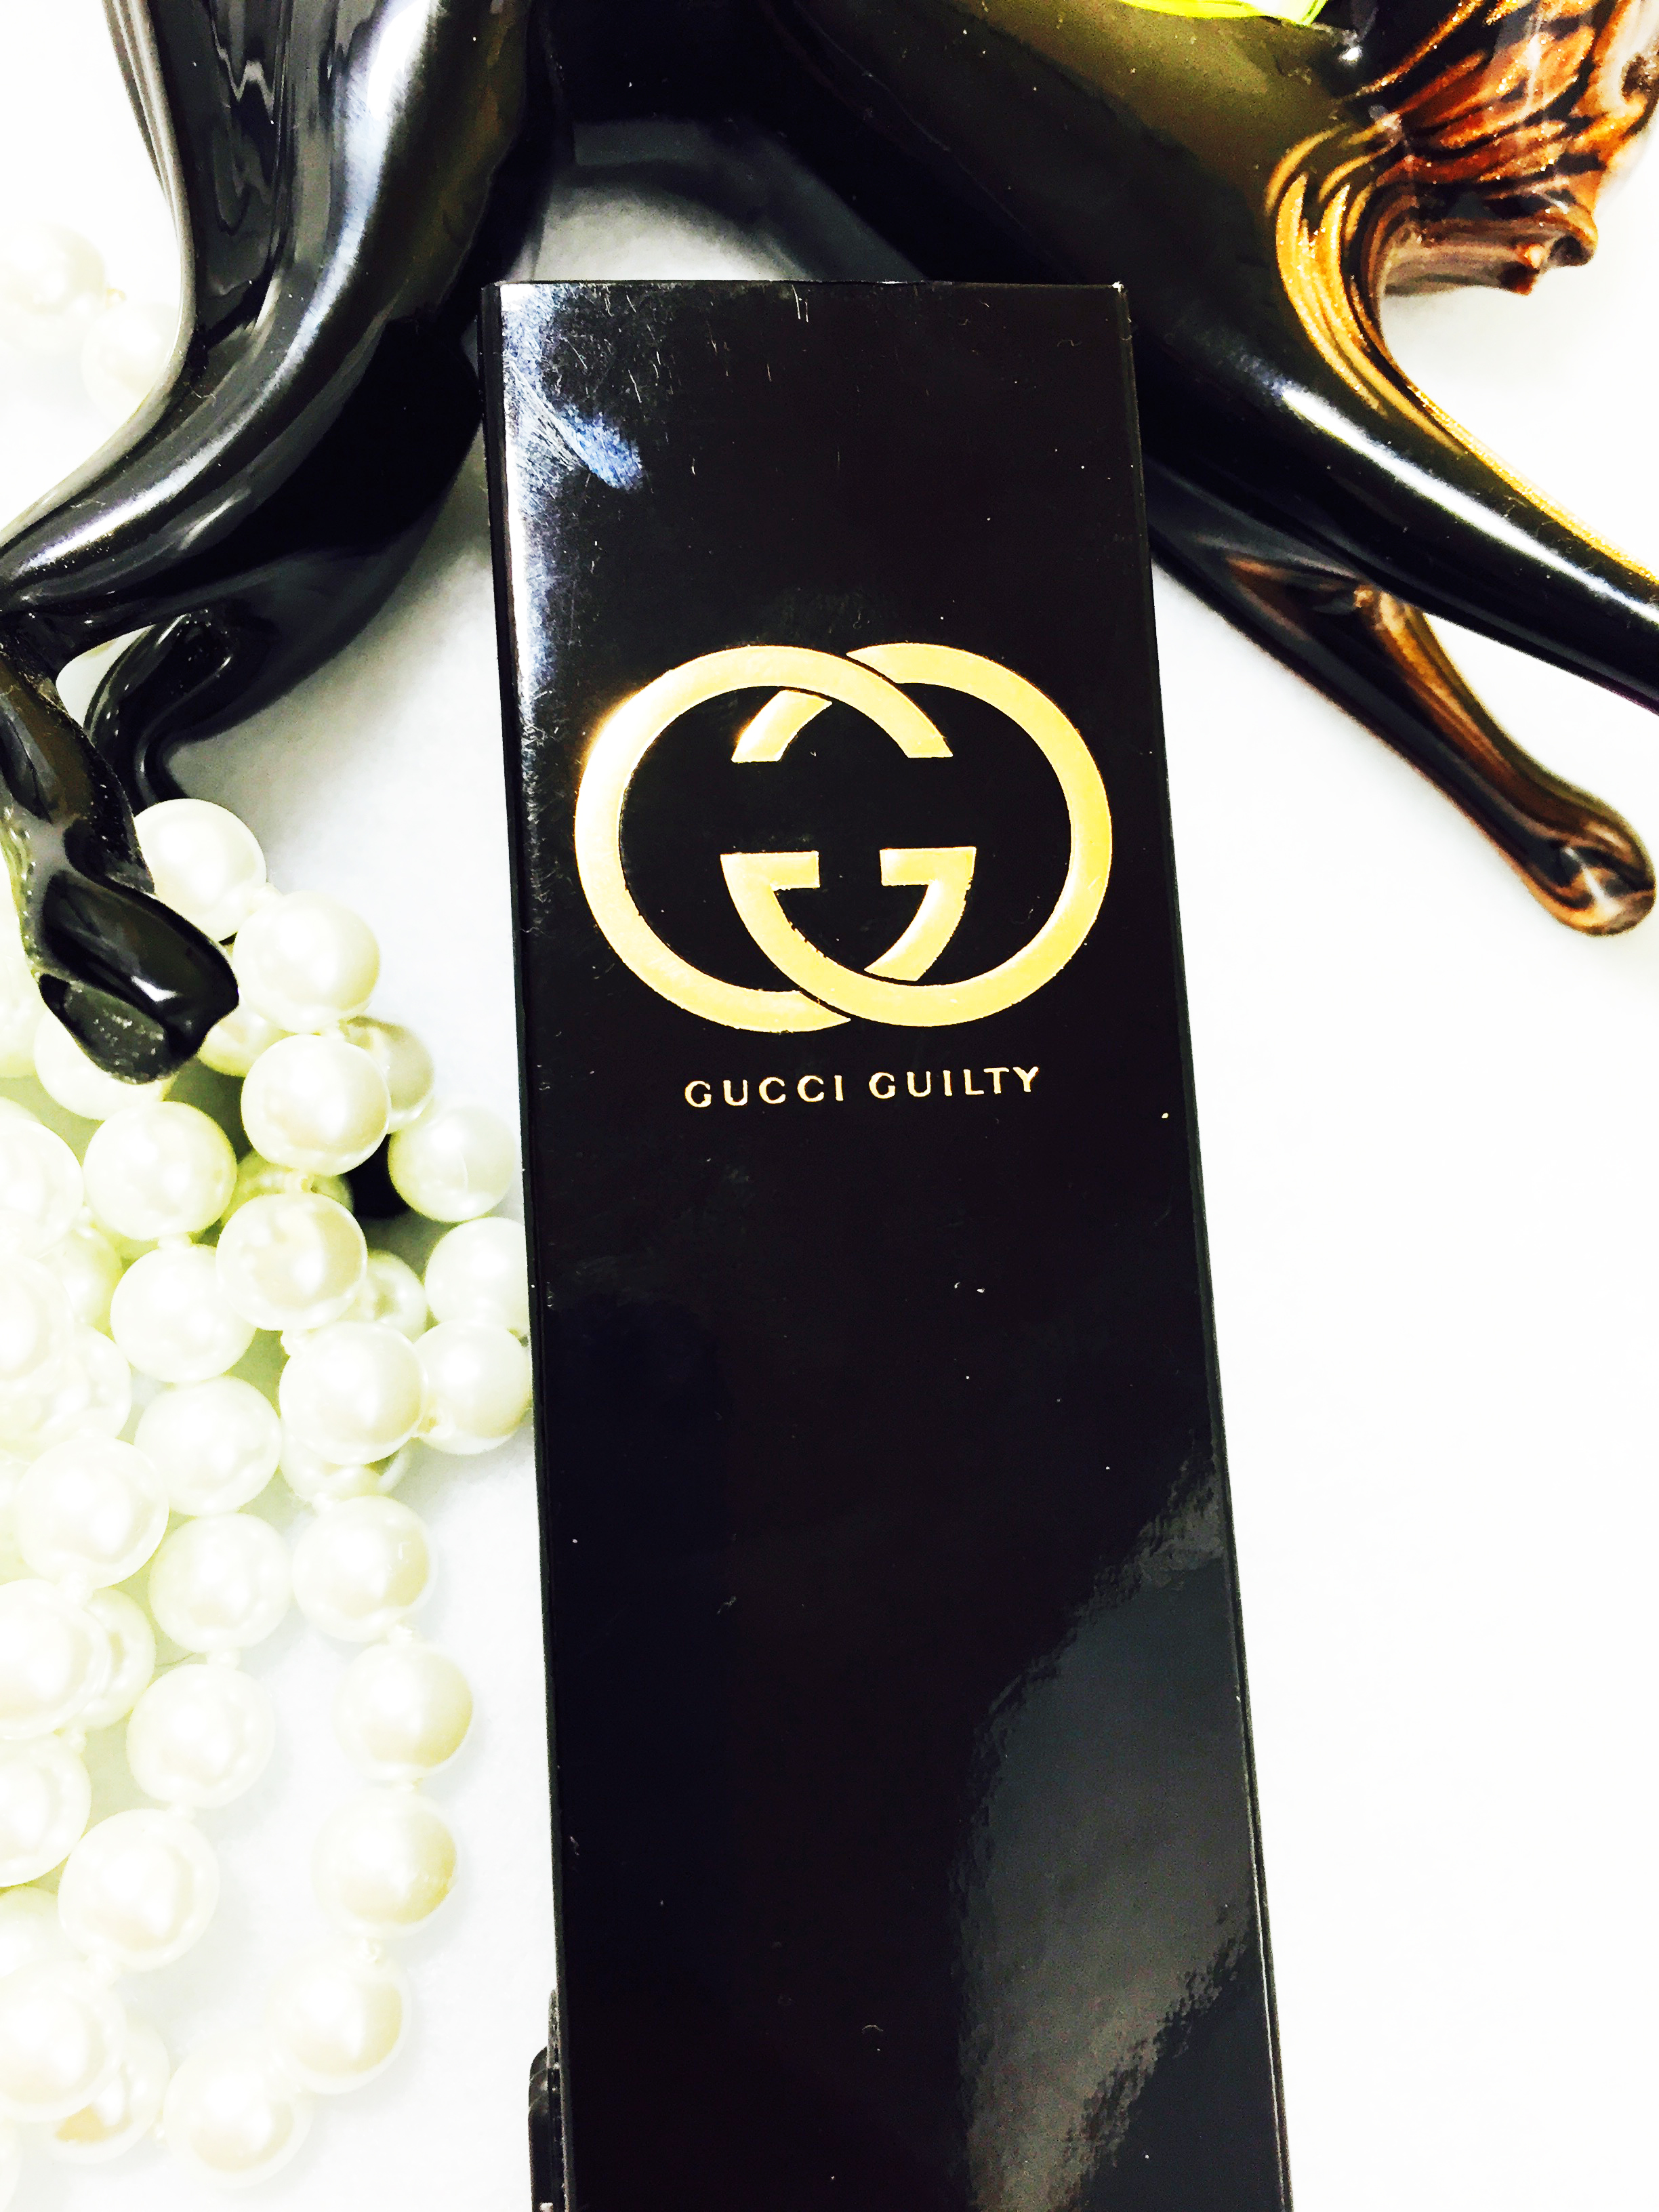 Gucci Guilty Perfume Review